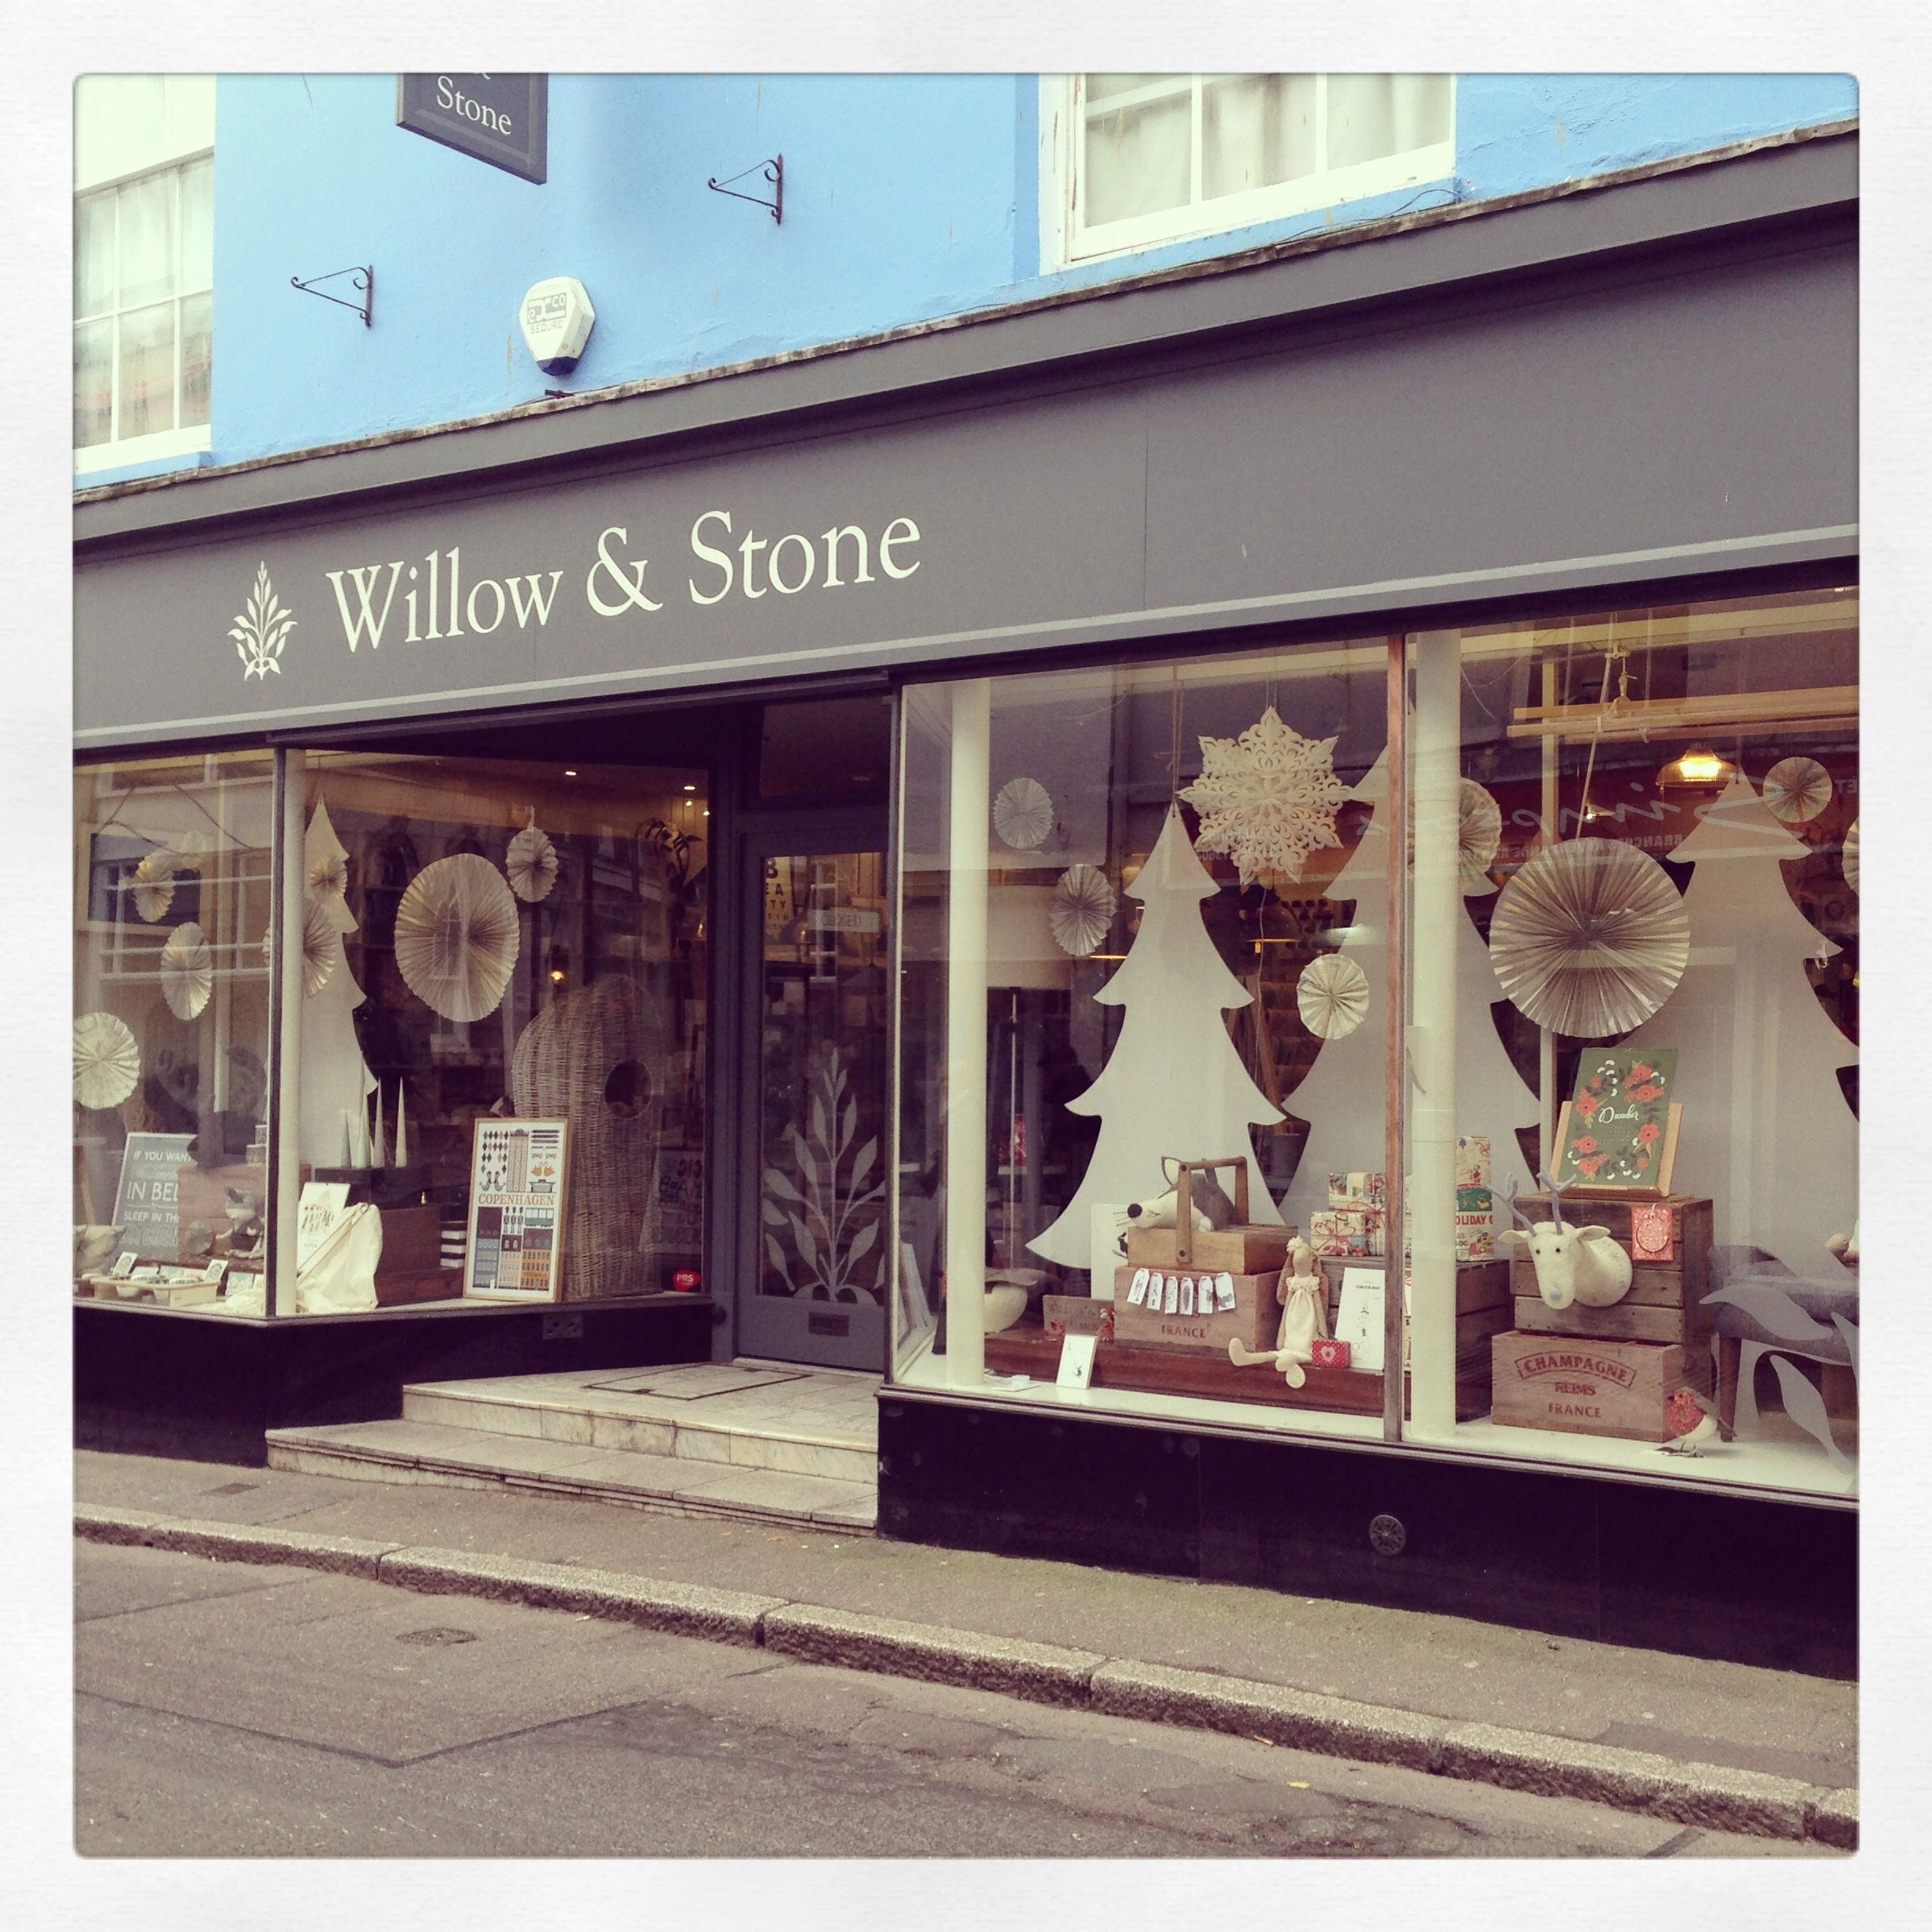 Our Finished Christmas Shop Front! Www.willowandstone.co